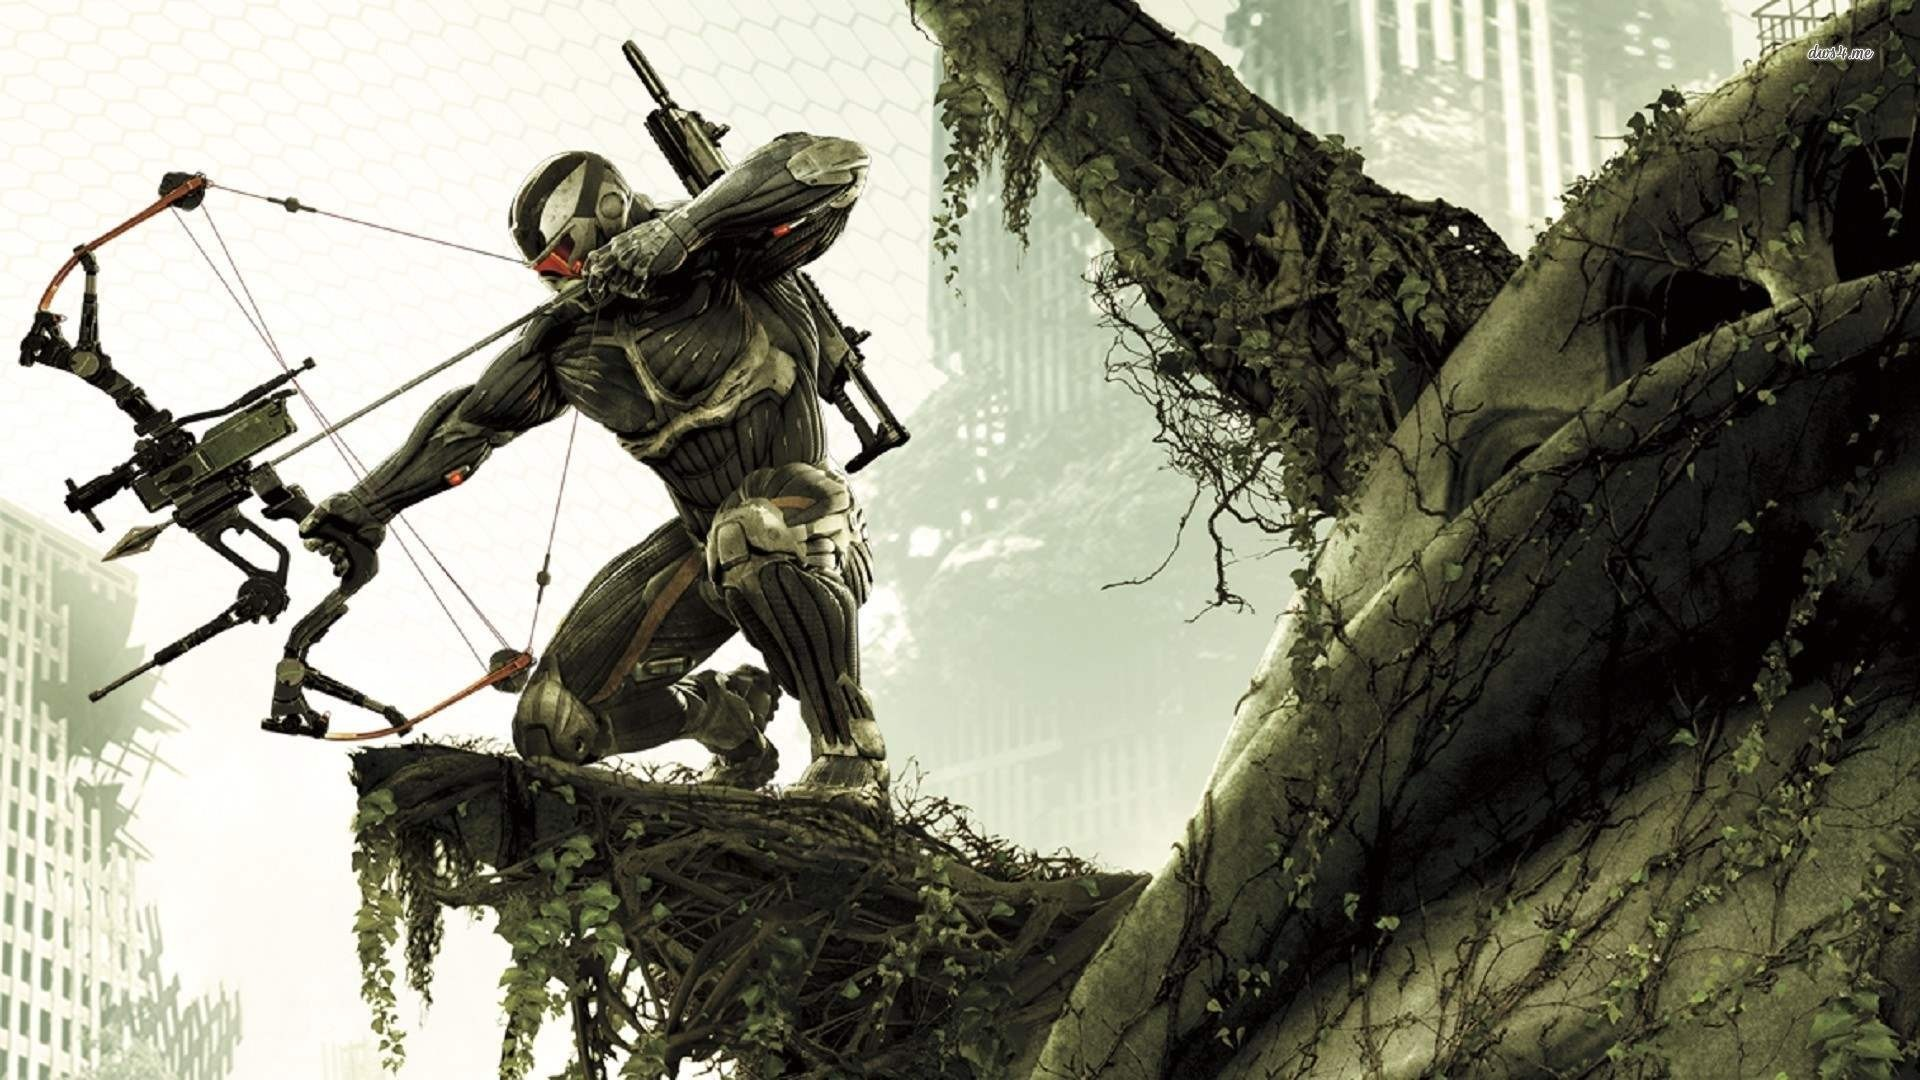 Crysis 3 Wallpaper 1920x1080 (85+ Images